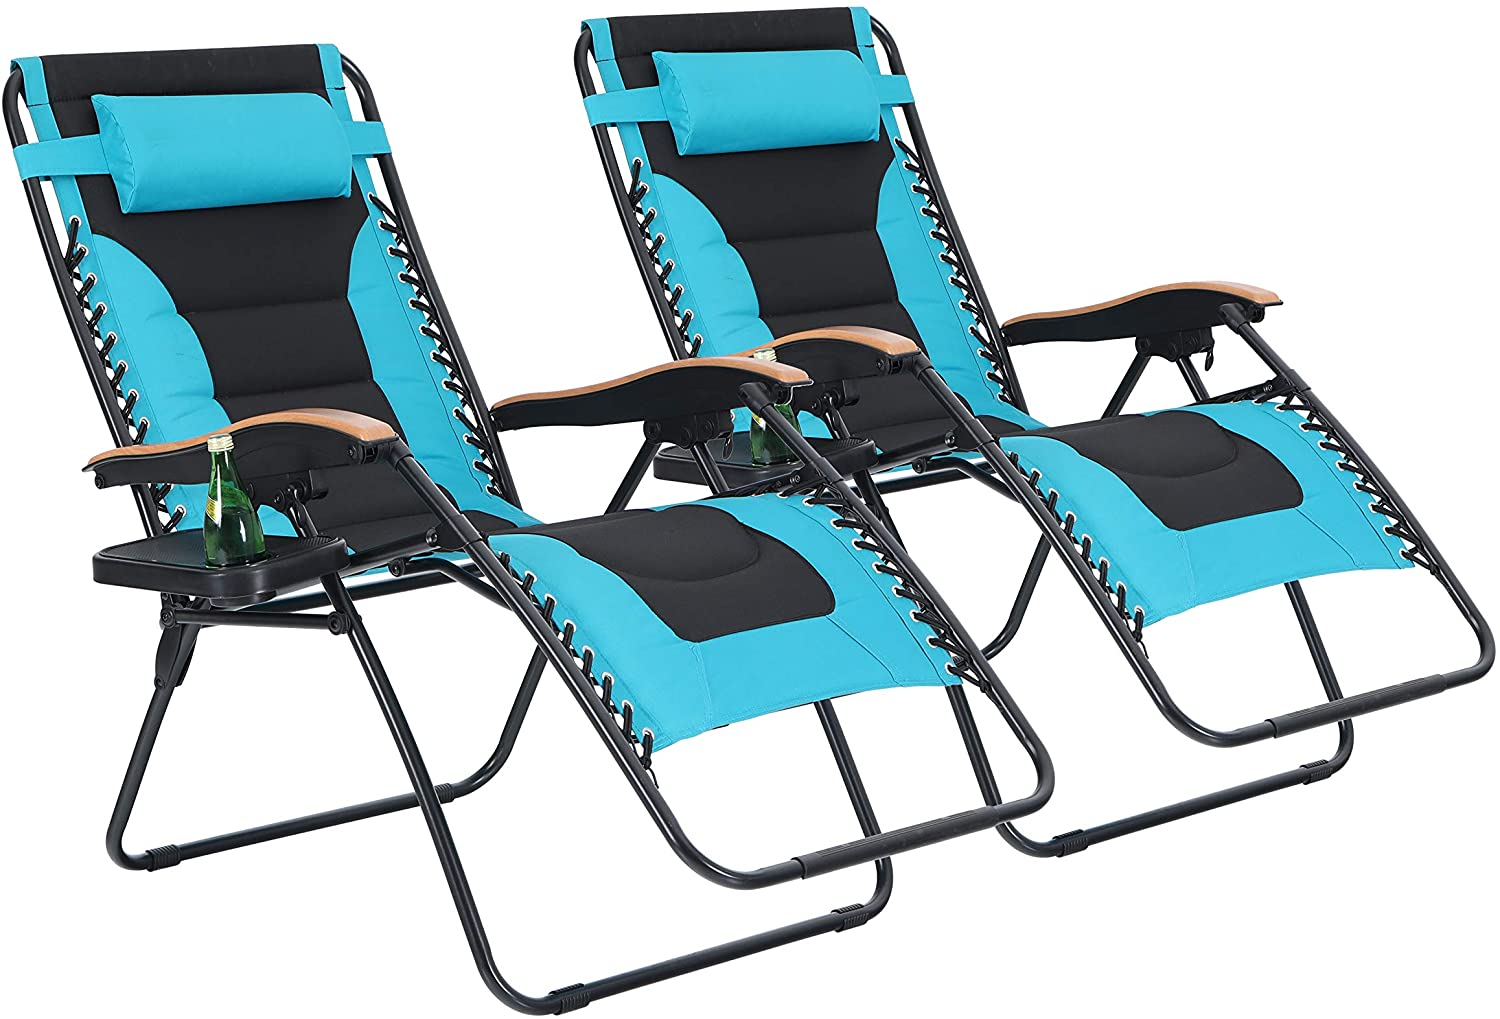 PHI VILLA Oversize XL Padded Zero Gravity Lounge Chairs Adjustable Recliner with Cup Holders Support 350lbs-2 Pack (Aqua)